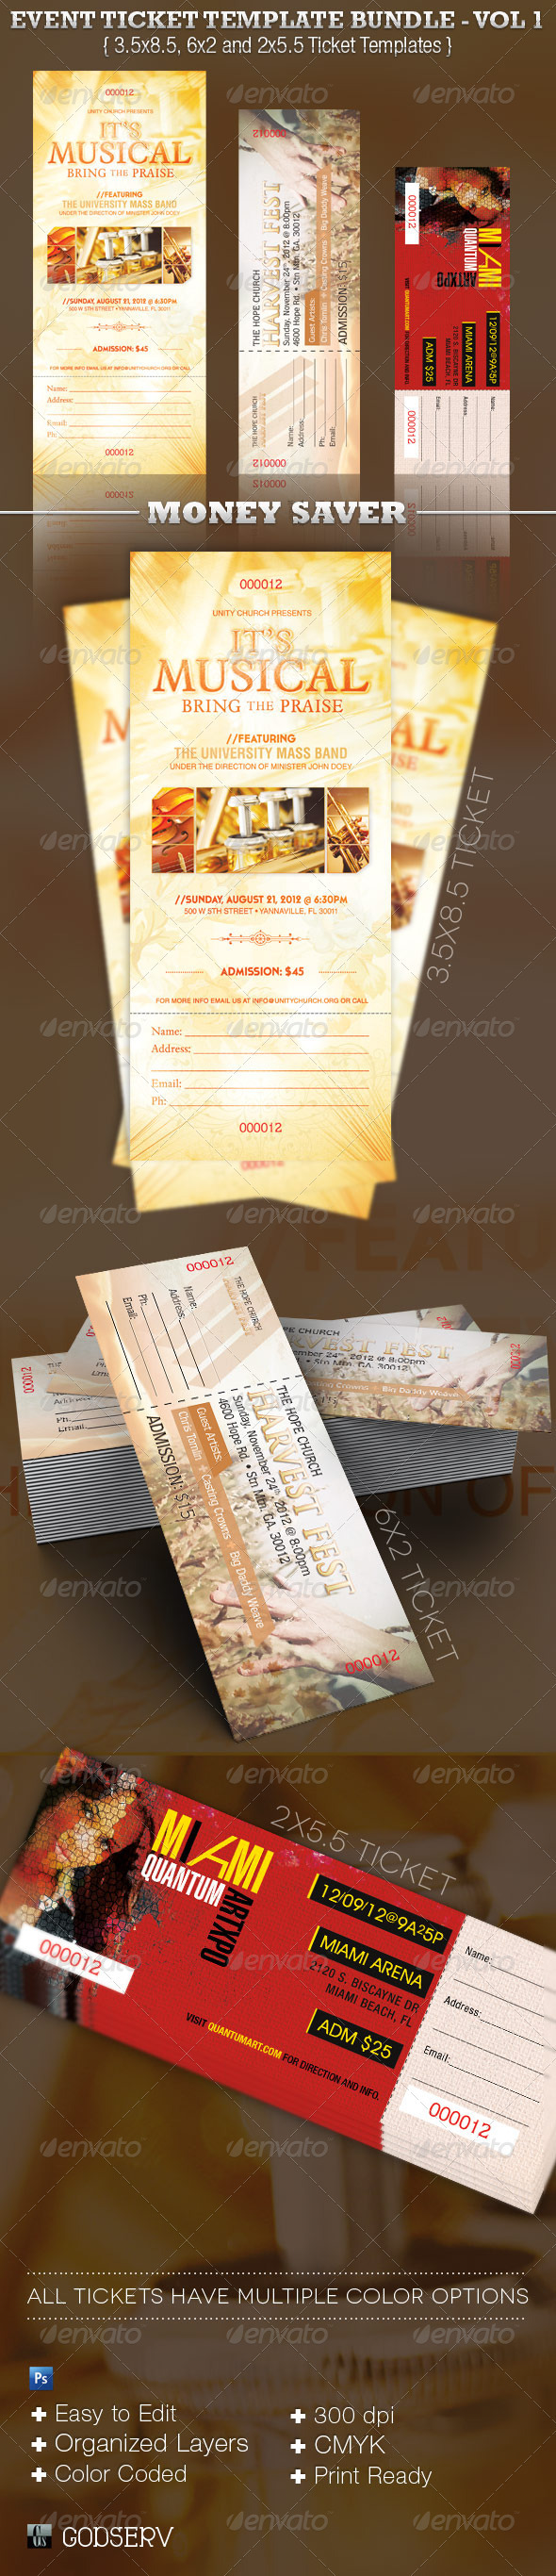 GraphicRiver Event Ticket Template Bundle Volume 1 3458690